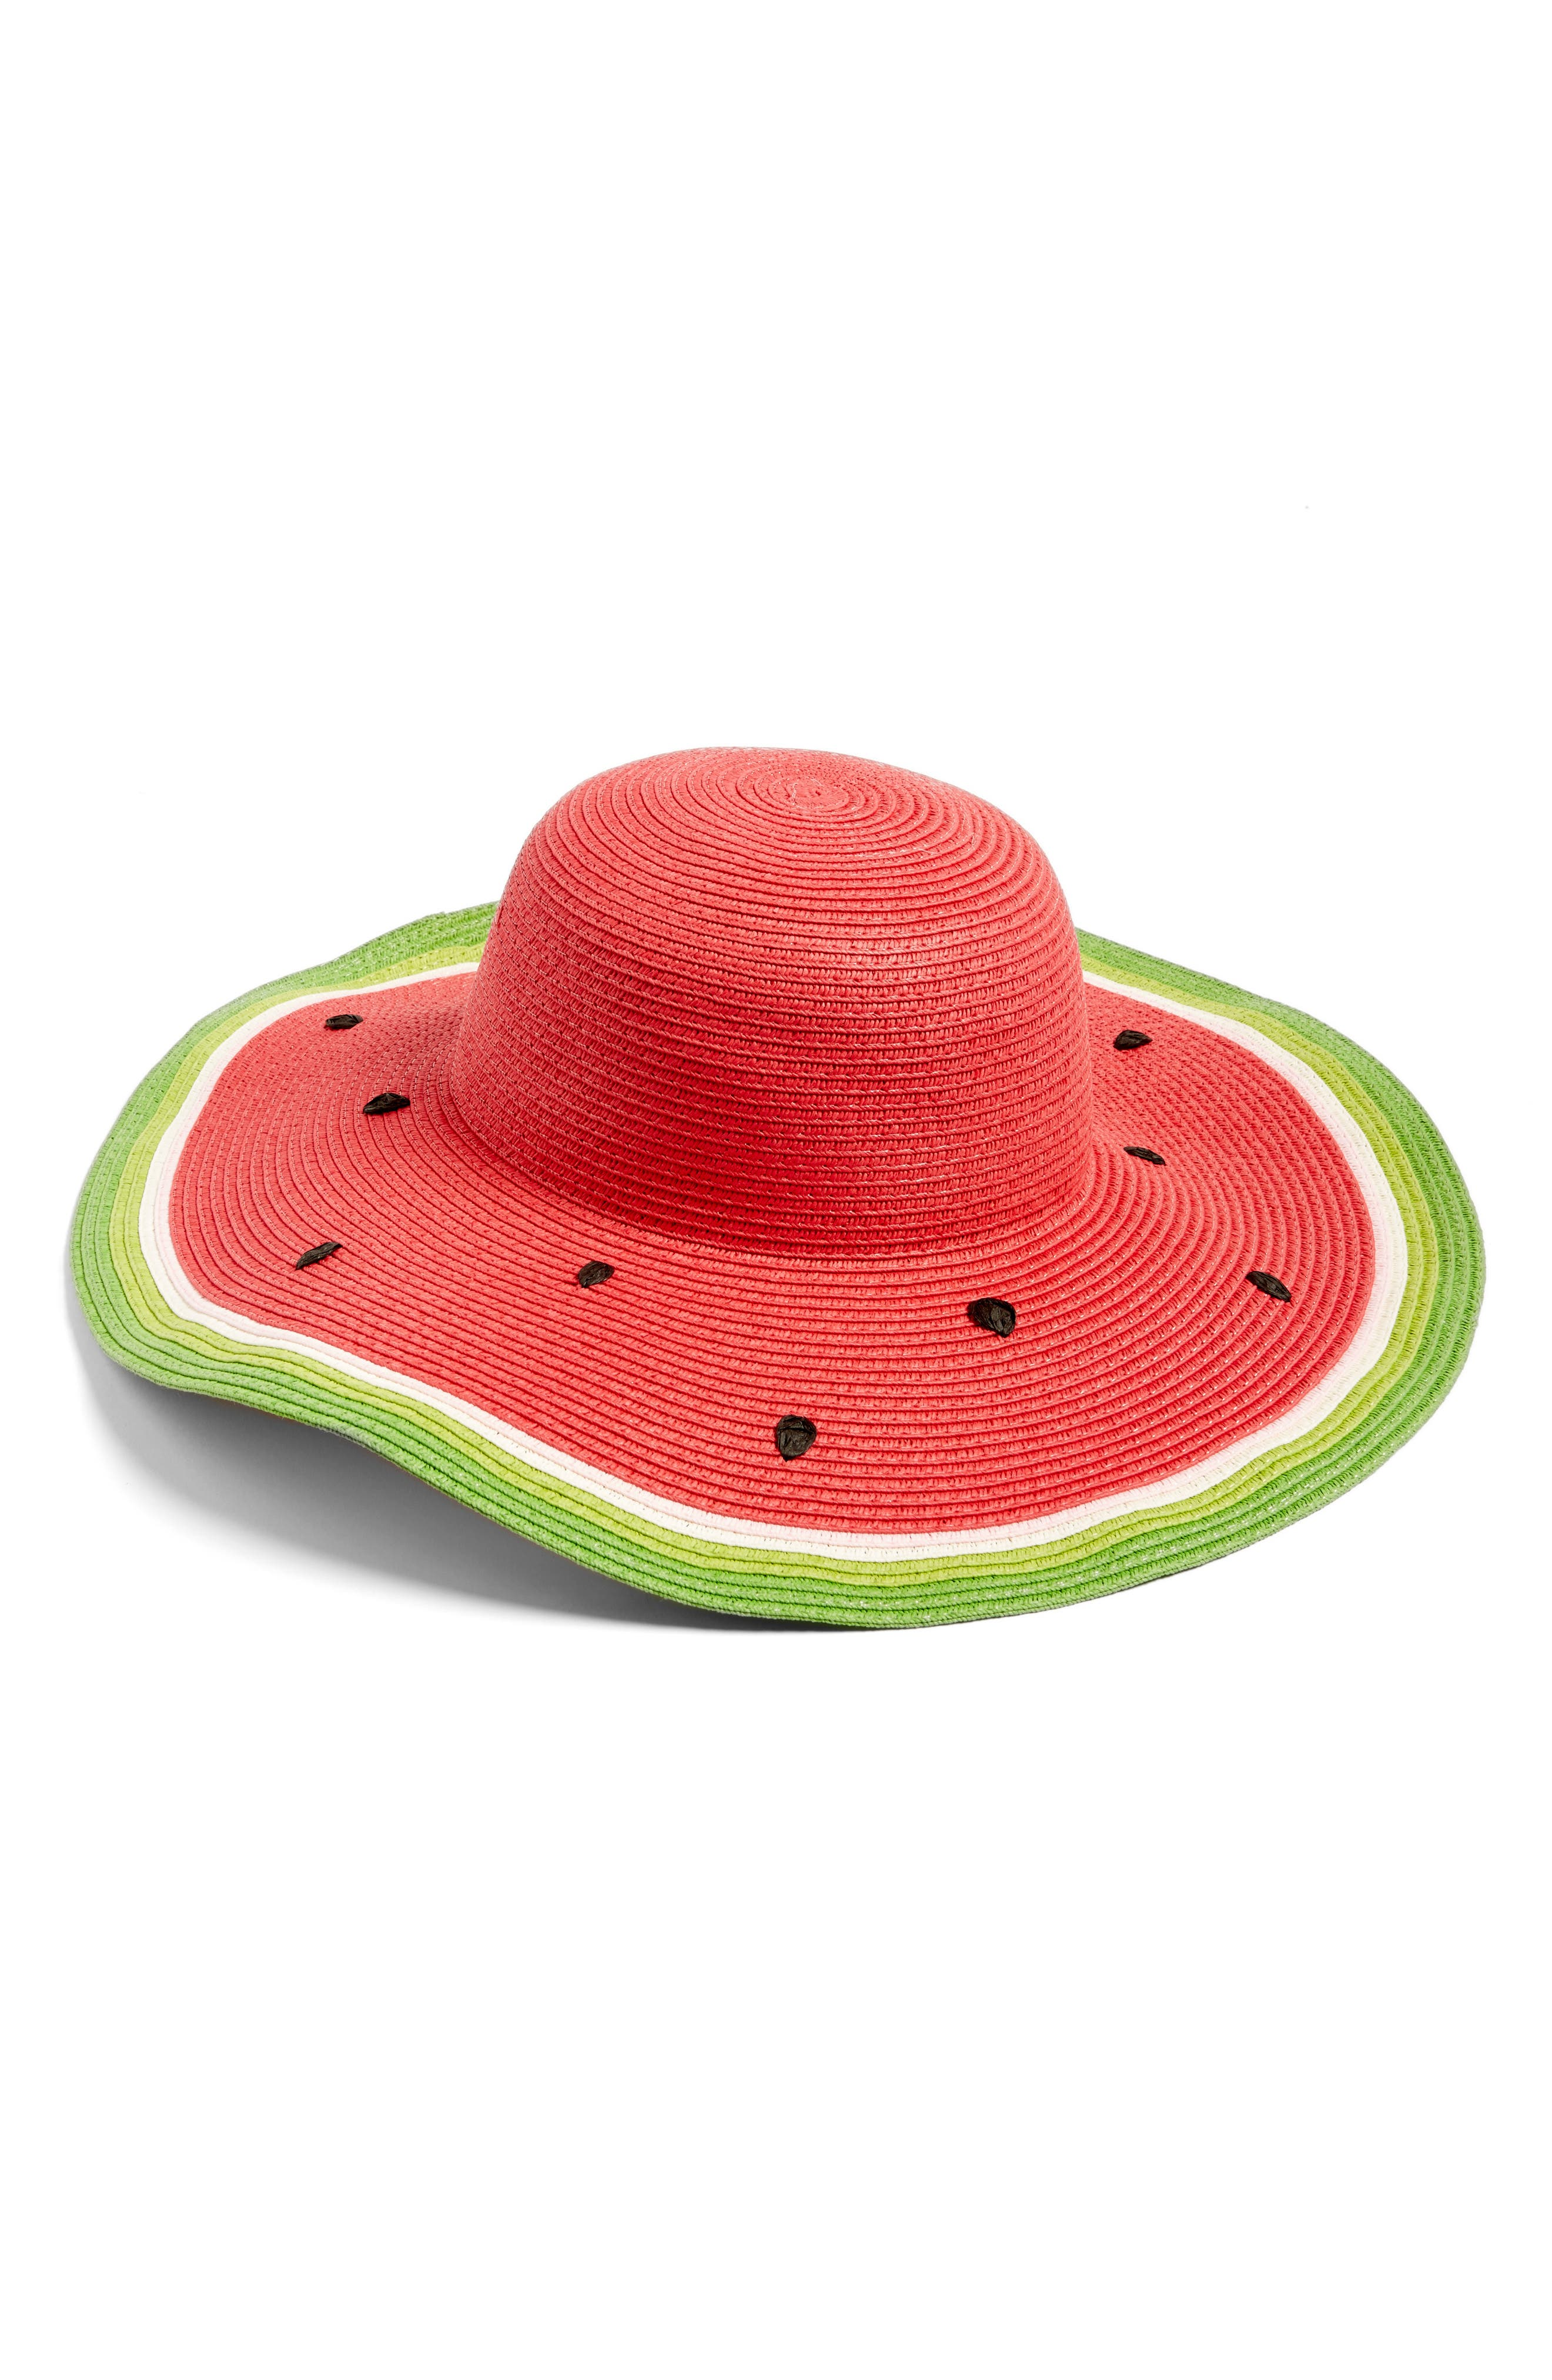 Alternate Image 1 Selected - Collection XIIX Watermelon Floppy Hat